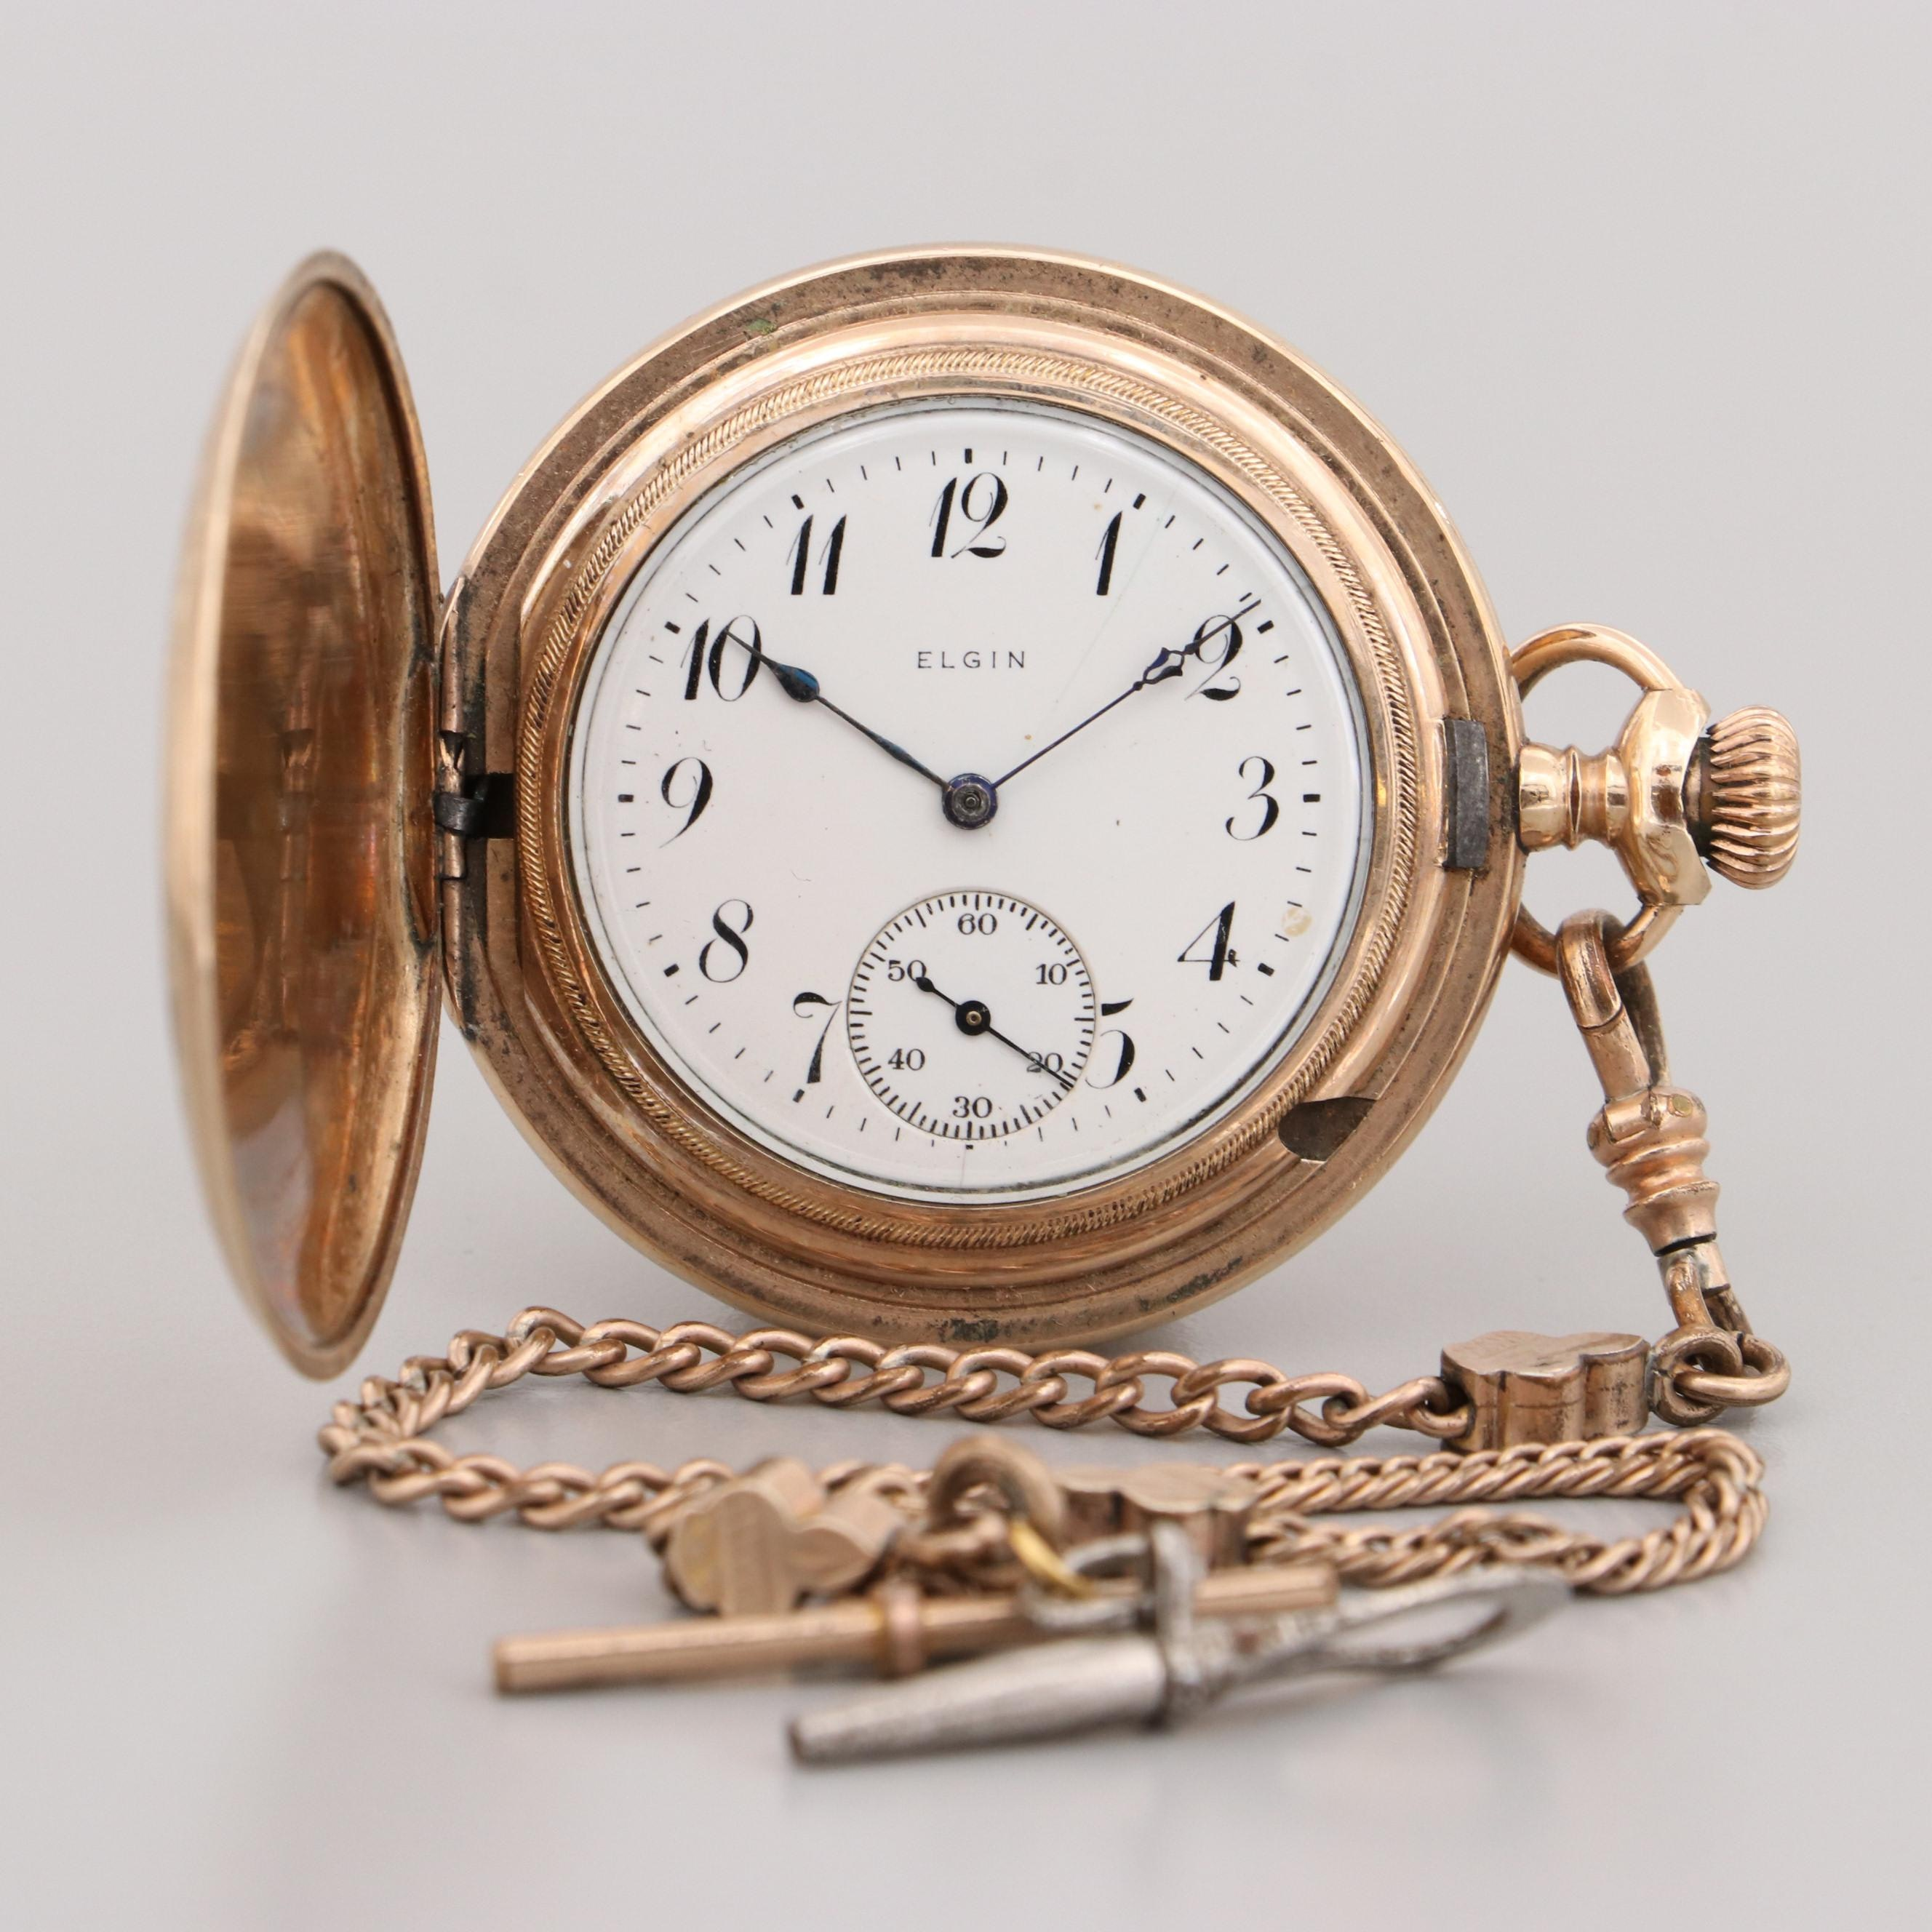 Antique Elgin Gold Filled Pocket Watch With Fob Chain